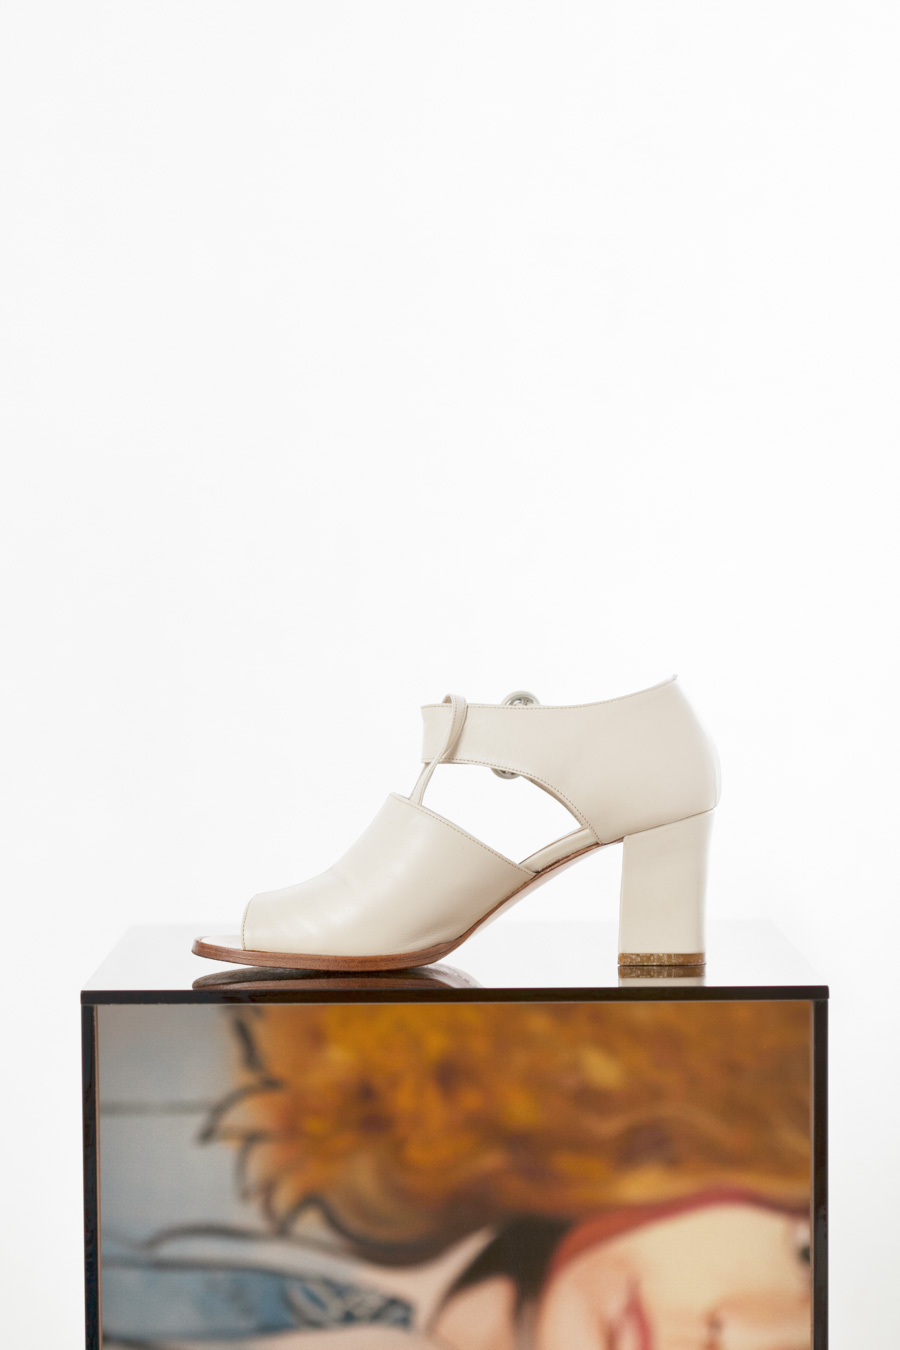 Toronto_Still_Life_Photographer_Joanna_Wojewoda_Second_Cousin_Vintage_Shoes-2.jpg